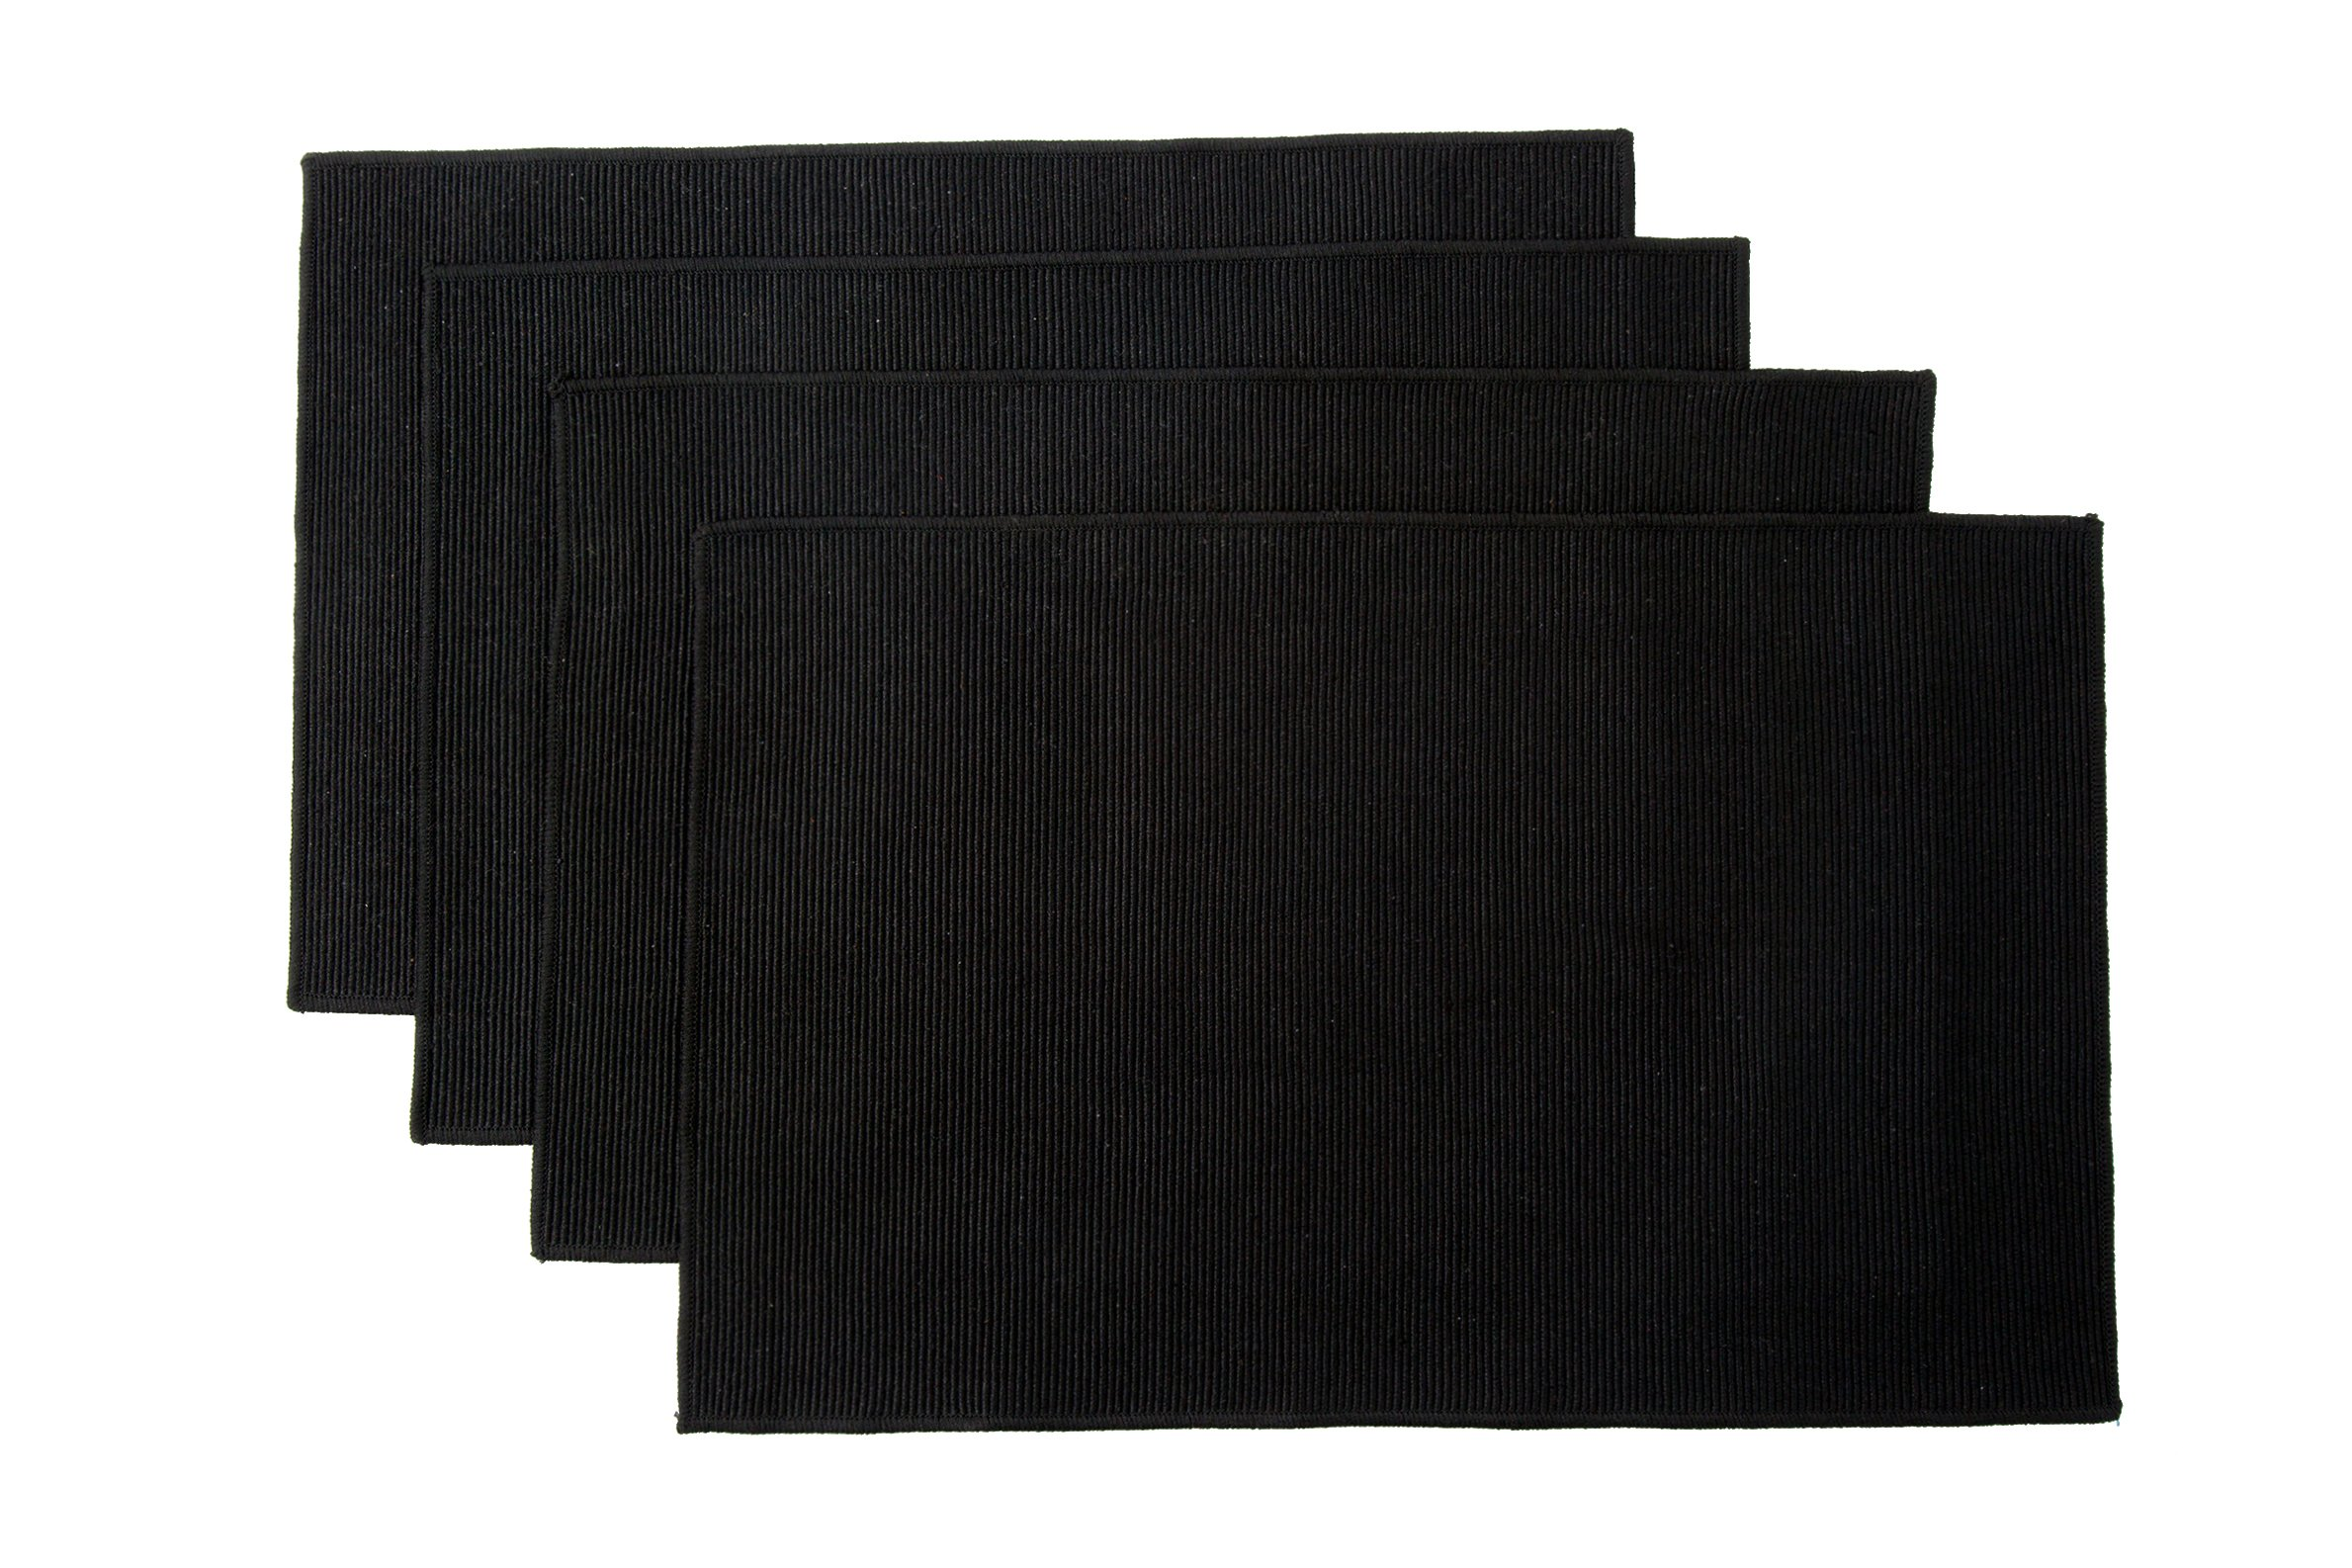 "WOOD MEETS COLOR Cotton Table Placemats Set of 4 Woven Braided Ribbed Washable Table Mats, 12"" x 18"" (Solid Black) - Each table mat is 12"" x 18"". Hand-woven with 100% cotton and linen Durable, heat insulation, easy to clean, wipe to clean - placemats, kitchen-dining-room-table-linens, kitchen-dining-room - 91DYHx2eIWL -"